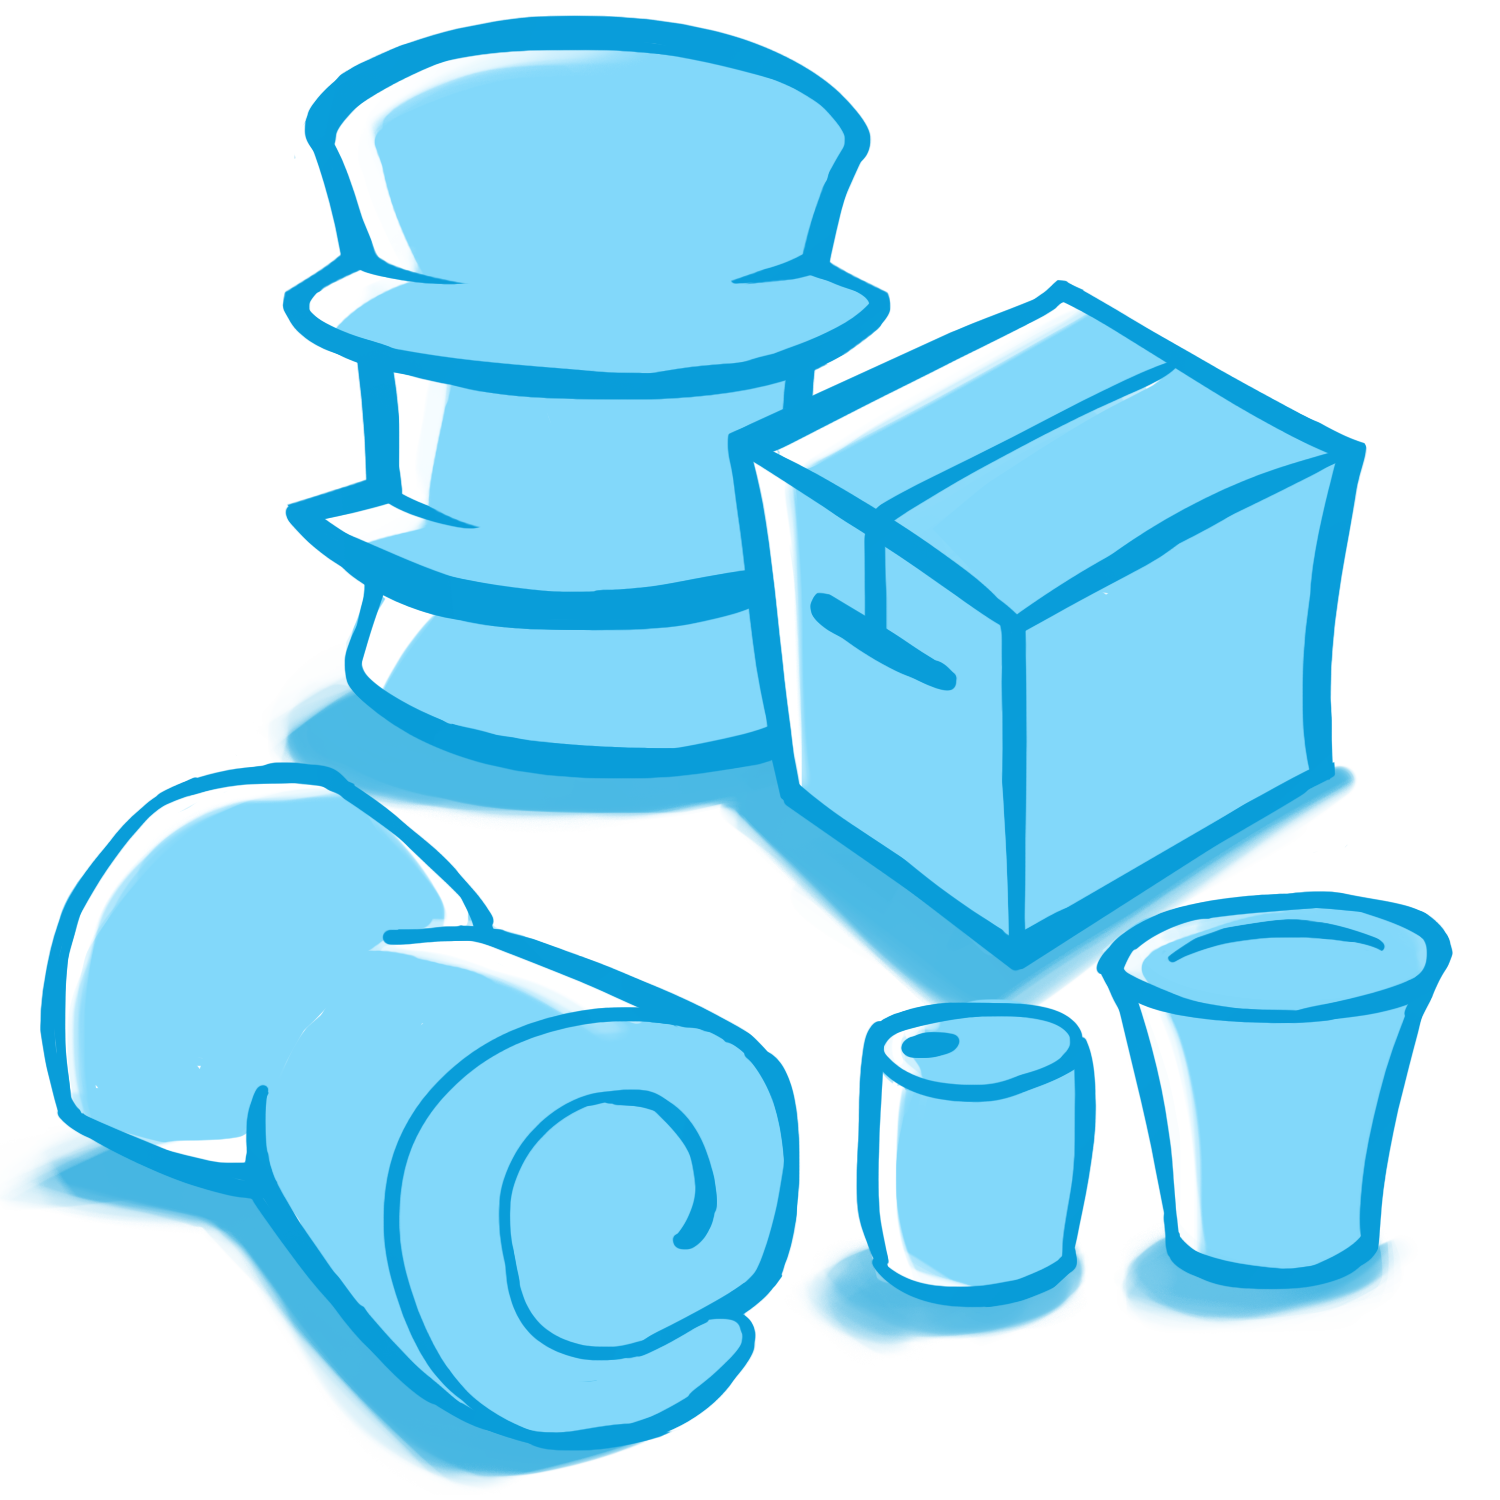 items_logo2.png